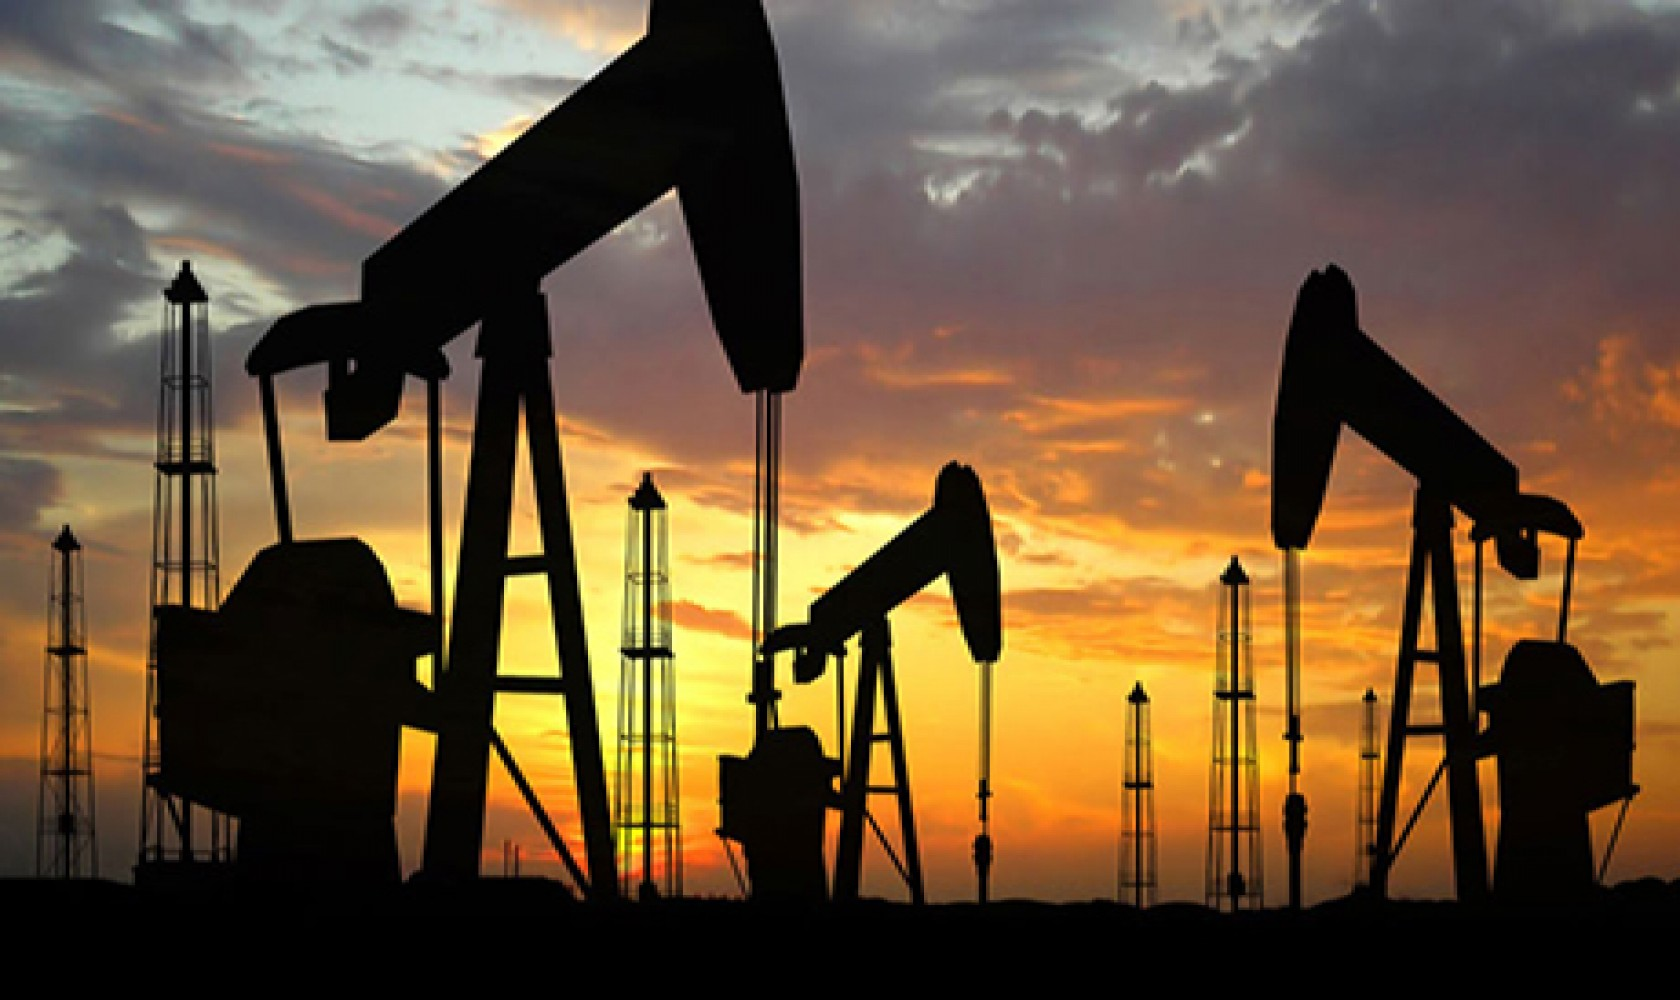 Petroleum engineers design and develop methods for extracting oil and gas from deposits below the earth's surface.